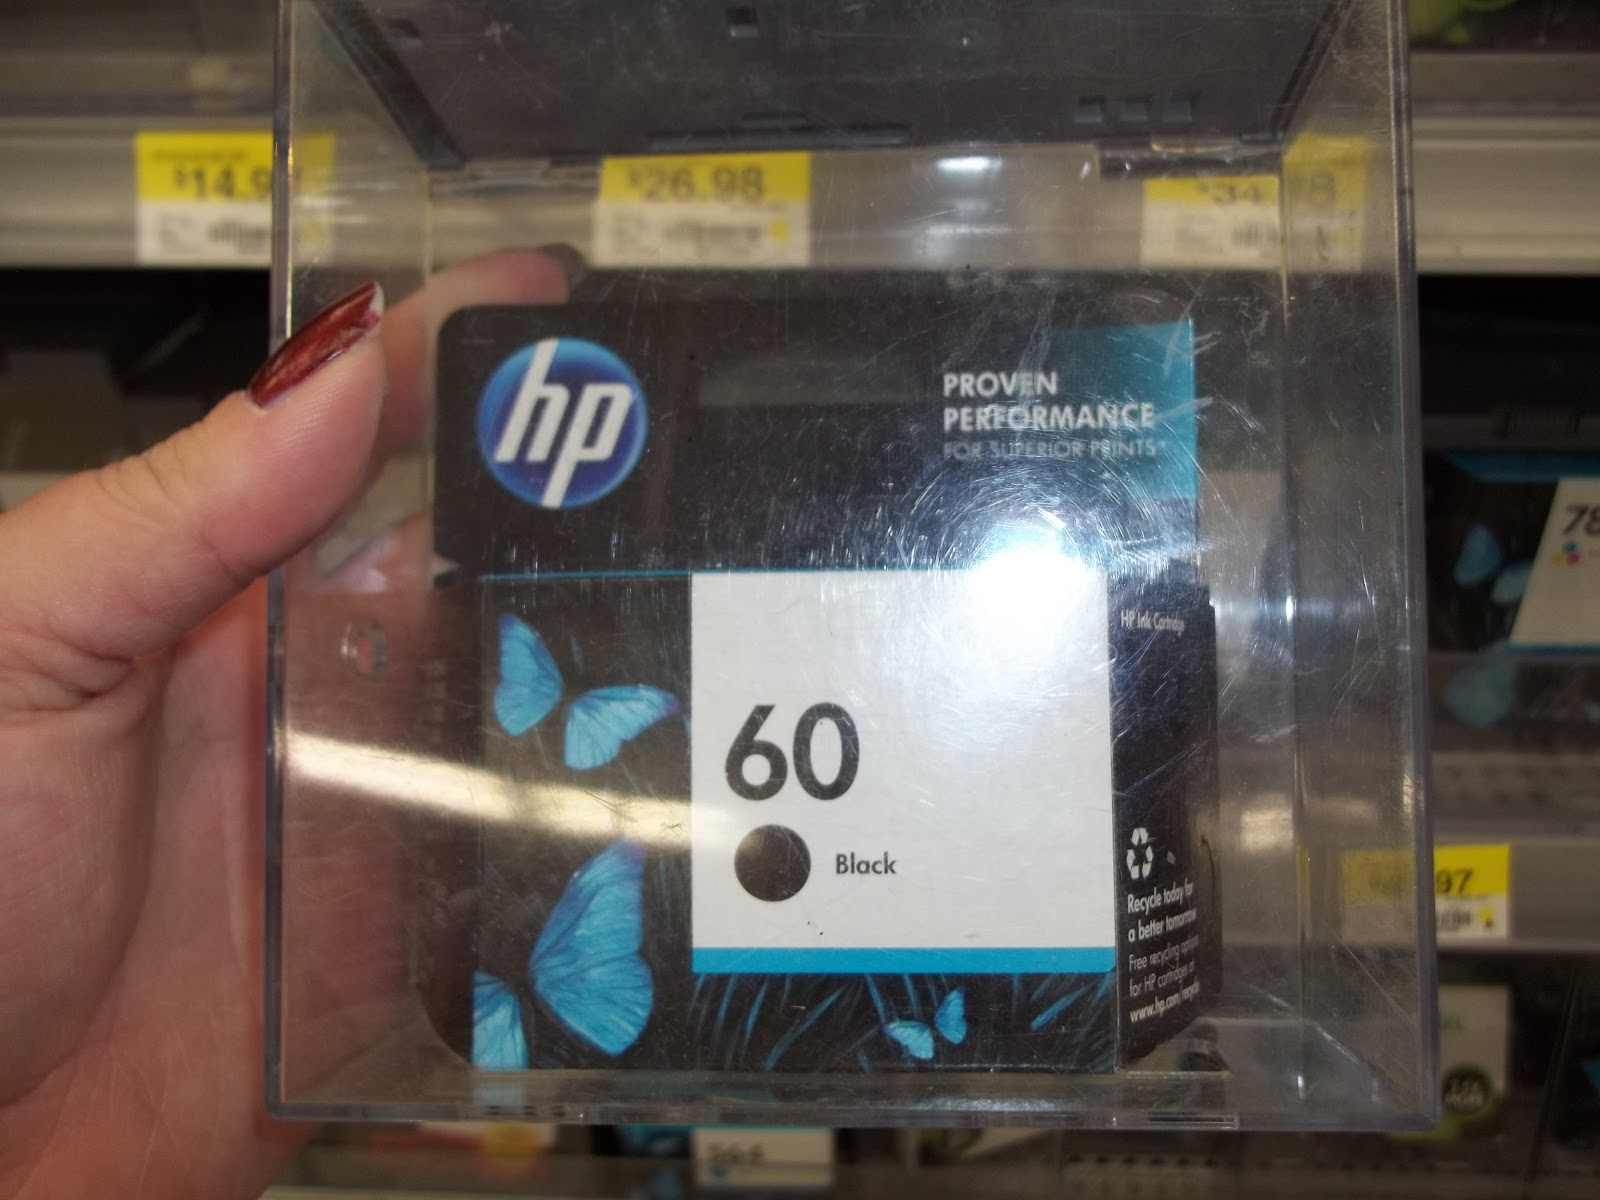 SARAHS BLOG OF FUN HP Ink At Walmart Review And Giveaway